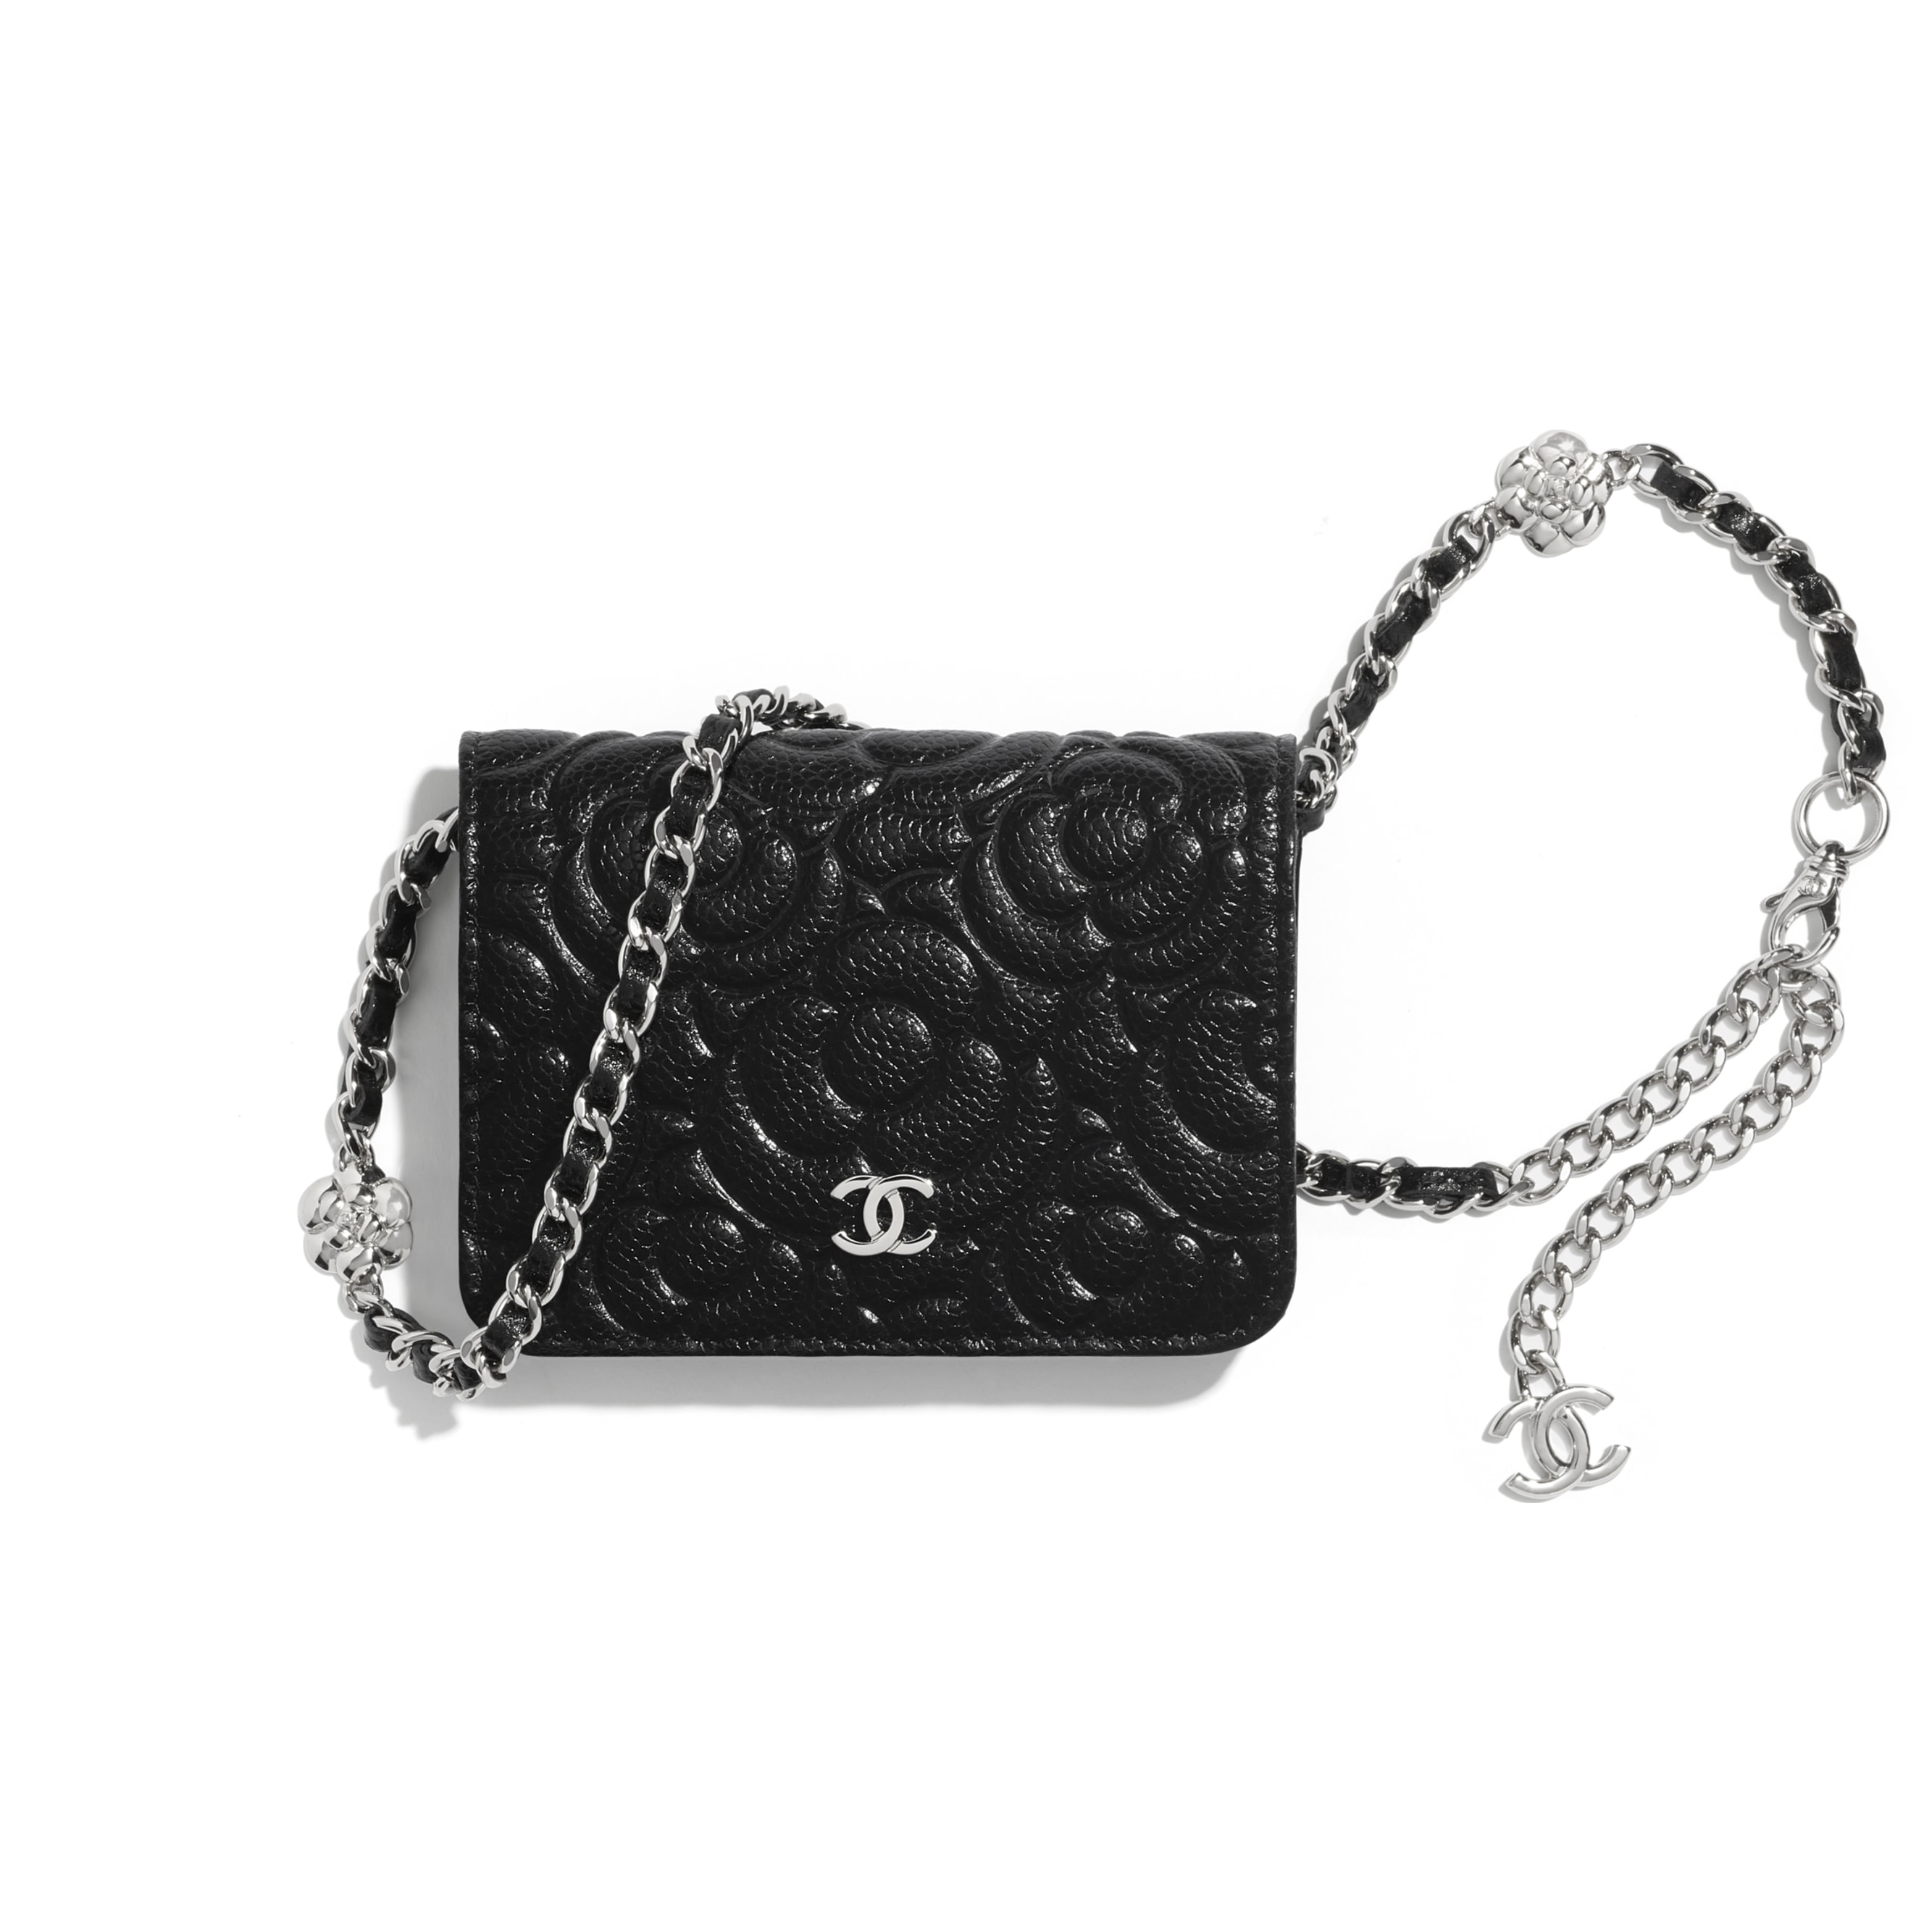 Belt Bag - Black - Grained Calfskin & Silver-Tone Metal - CHANEL - Default view - see standard sized version